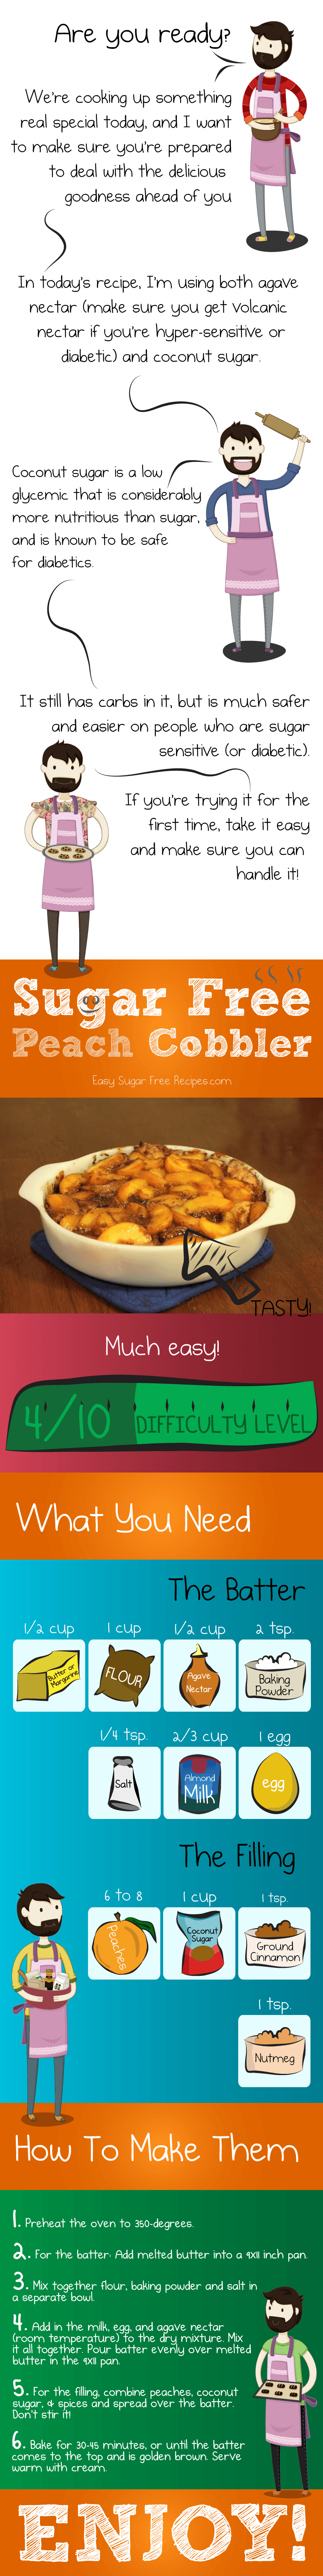 a recipe comic for sugar free peach cobbler complete with instructions and ingredients